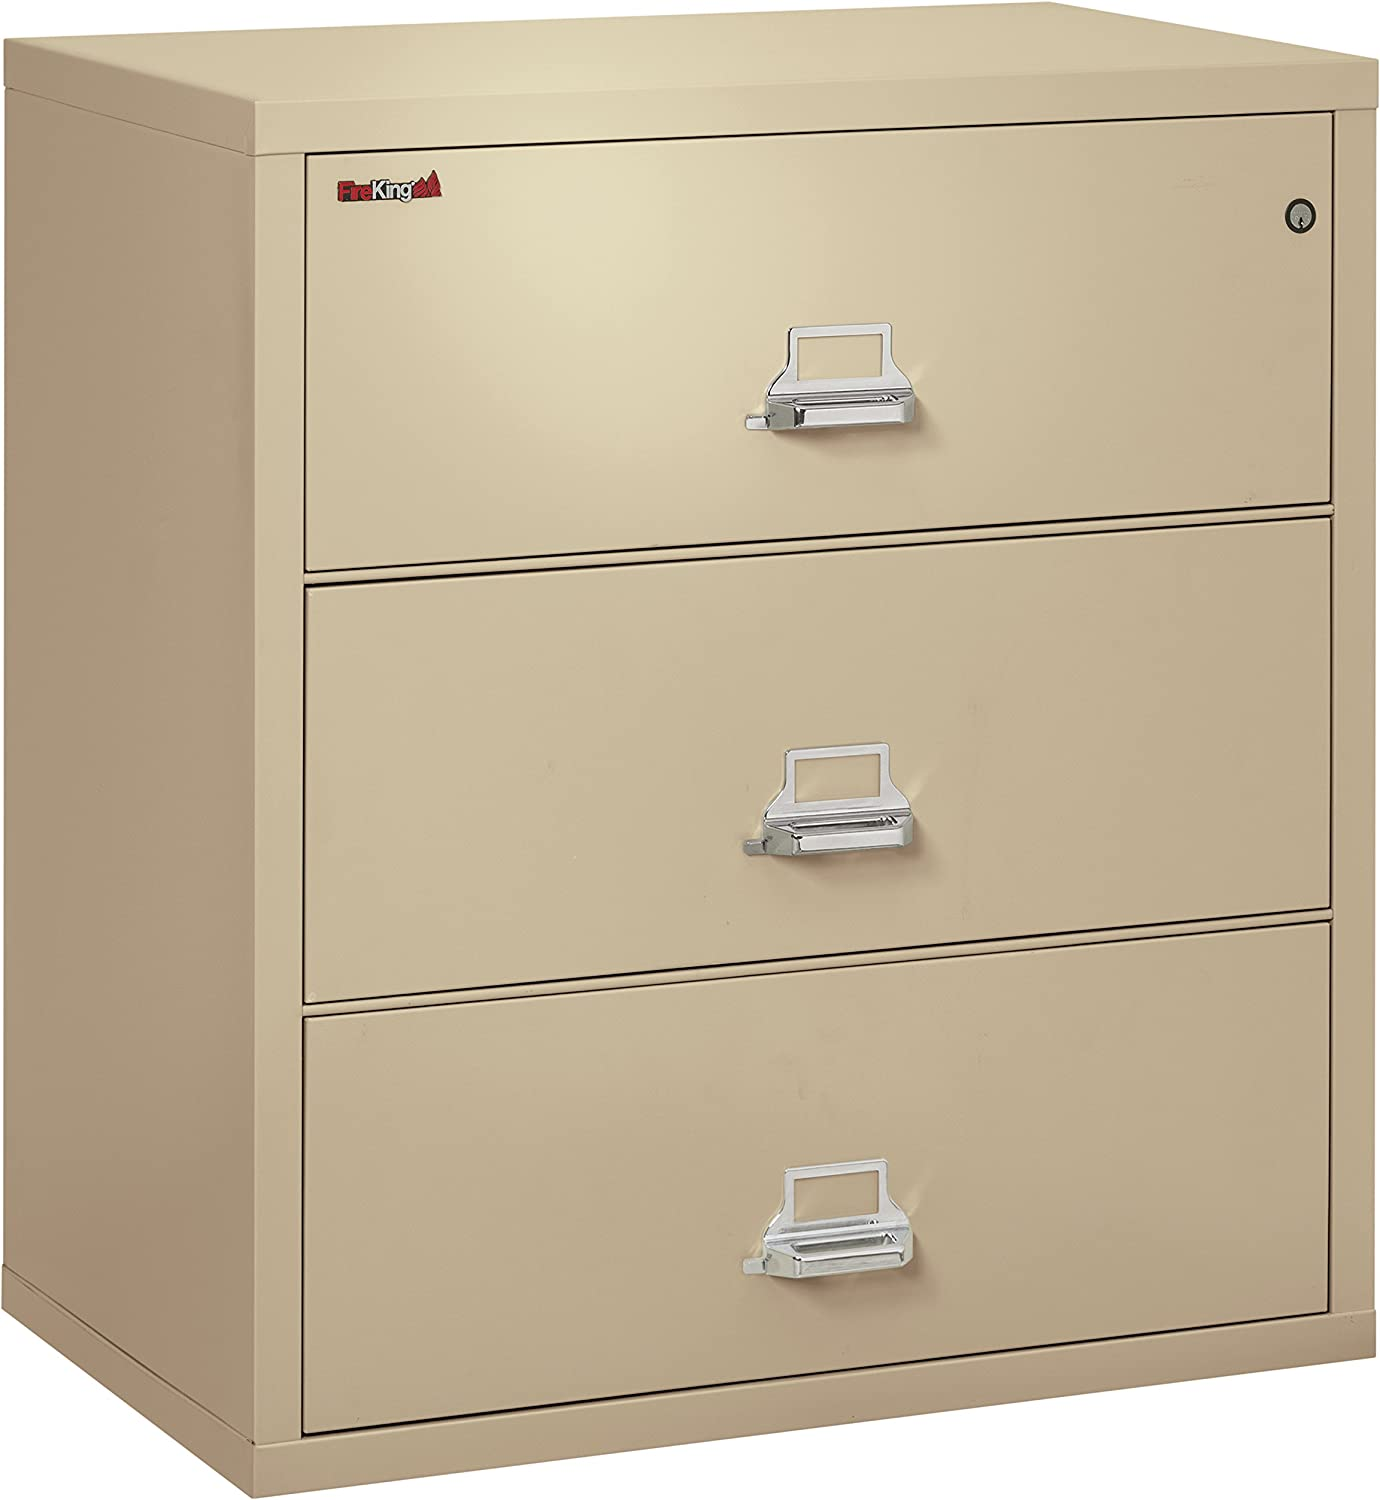 Fireking Fireproof Lateral File Cabinet 3 Drawers Impact